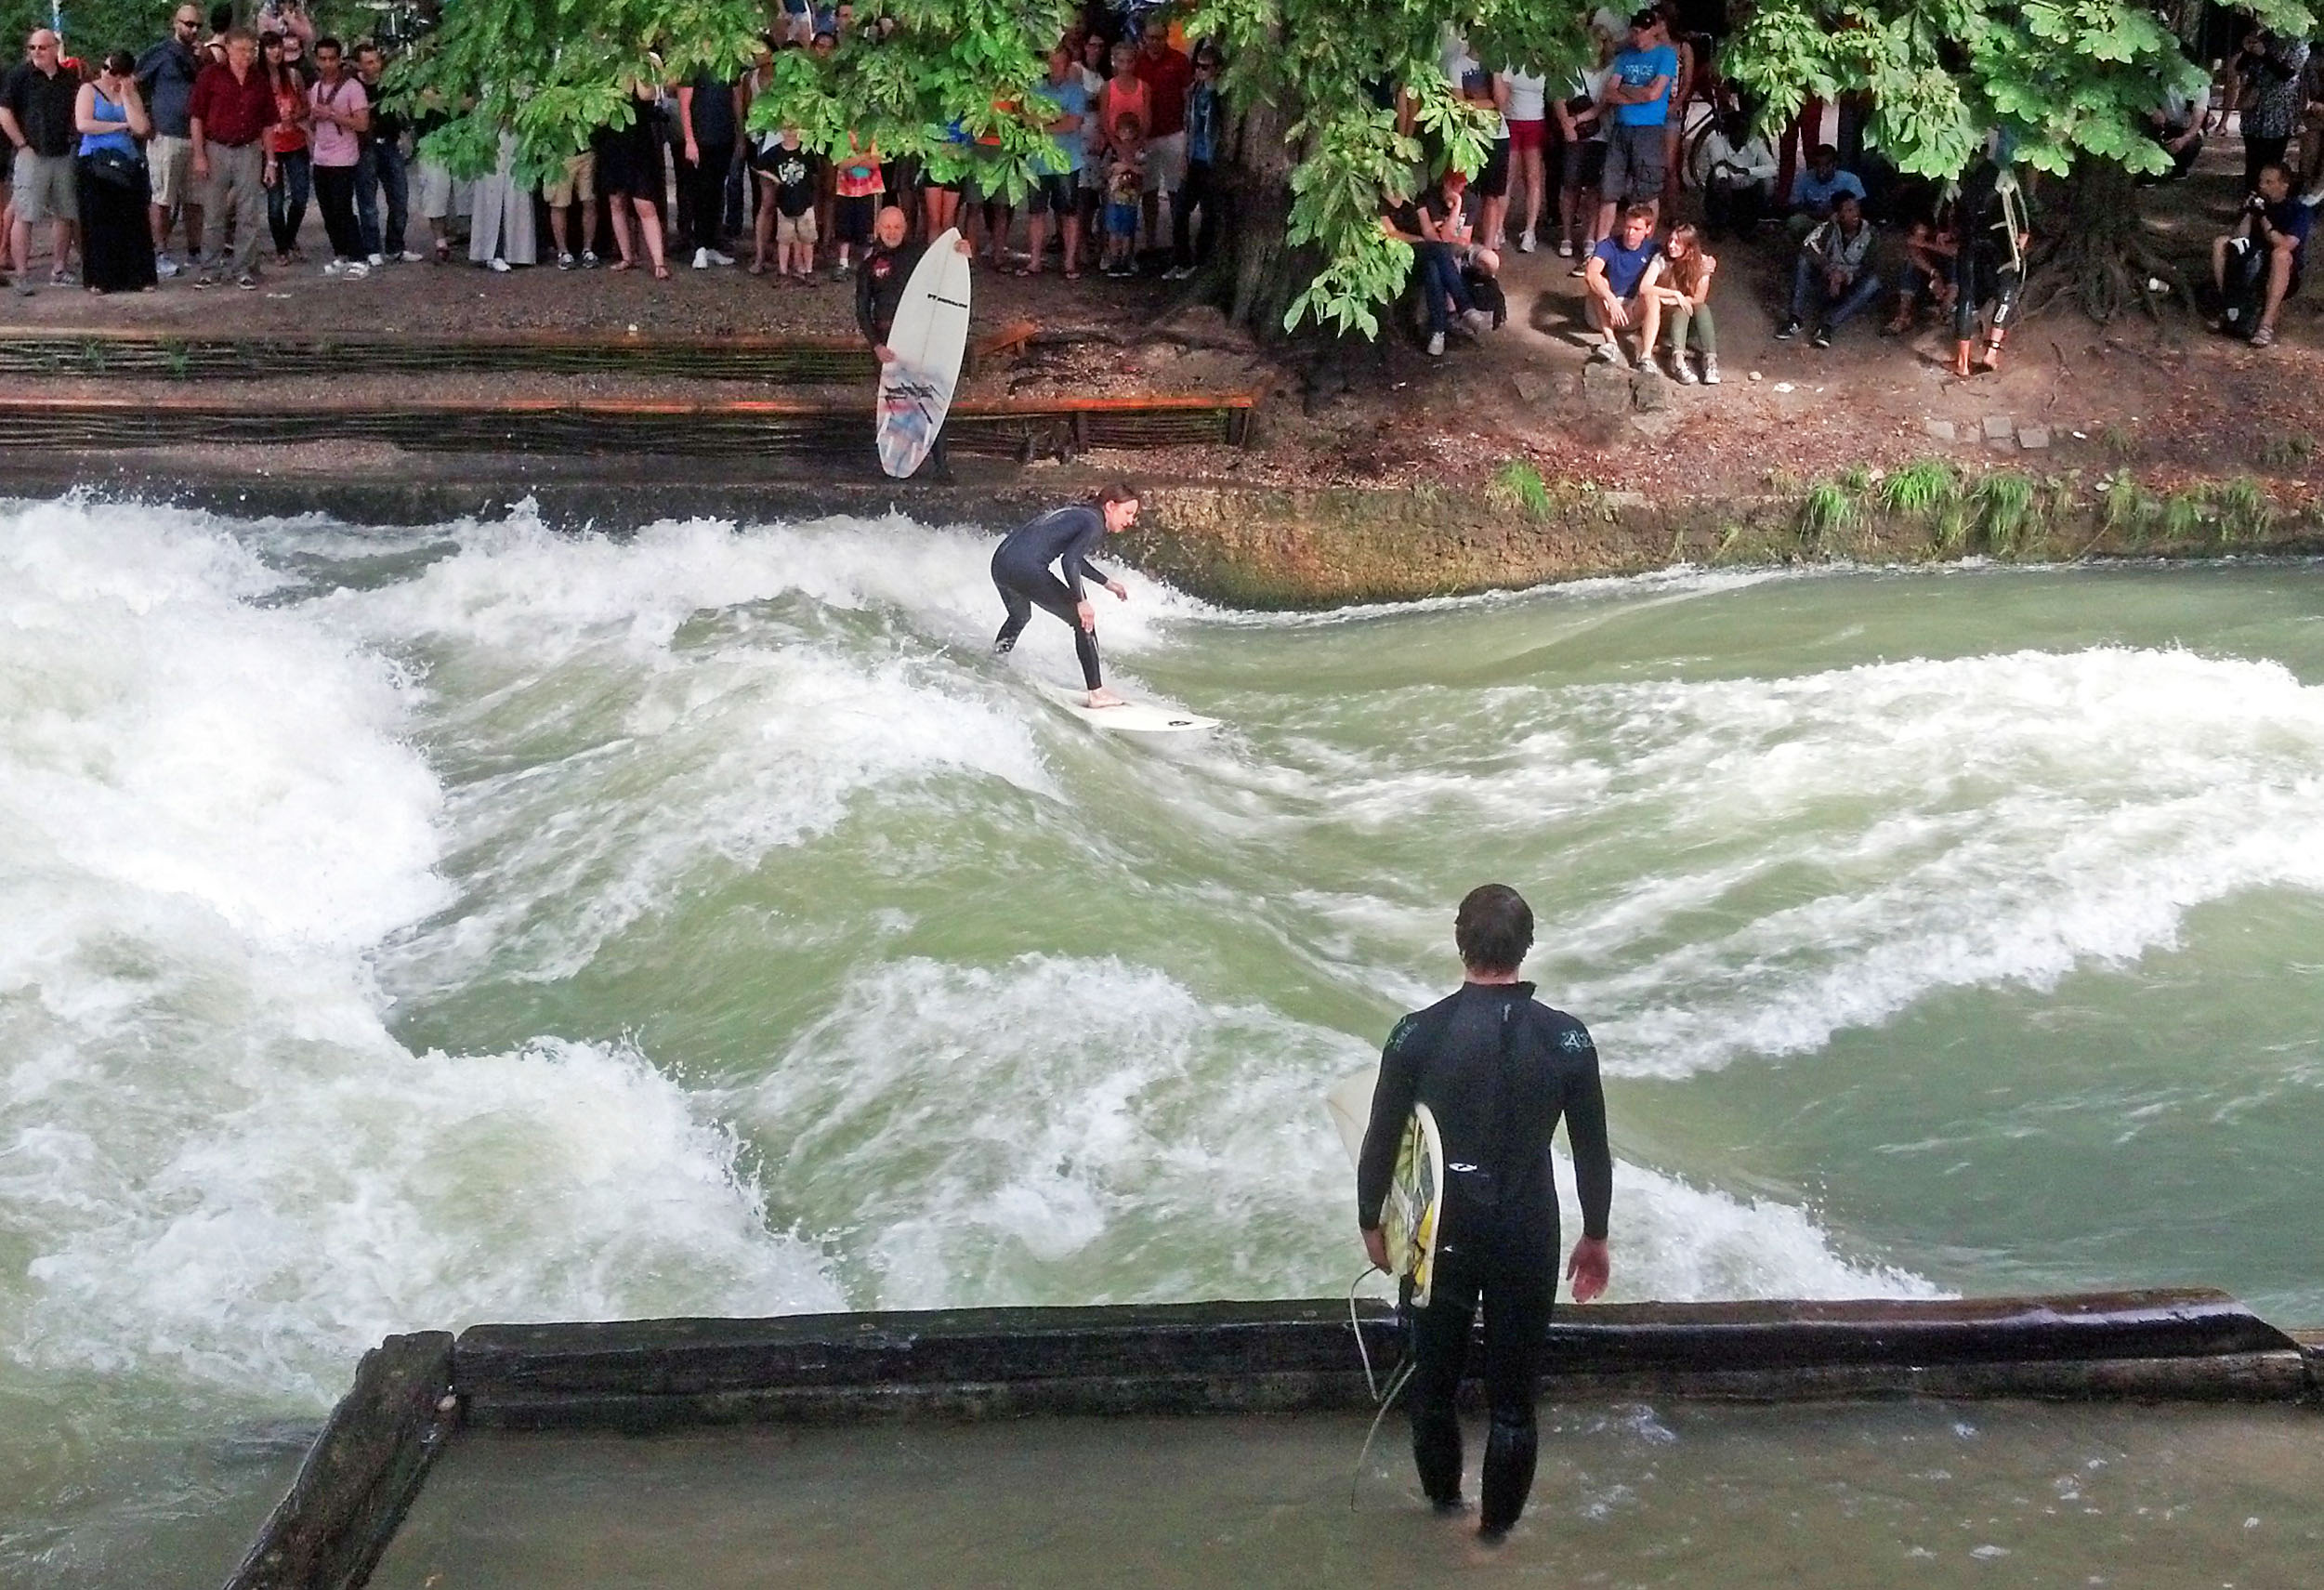 River surfing on the  Eisbach River. Hang Ten?